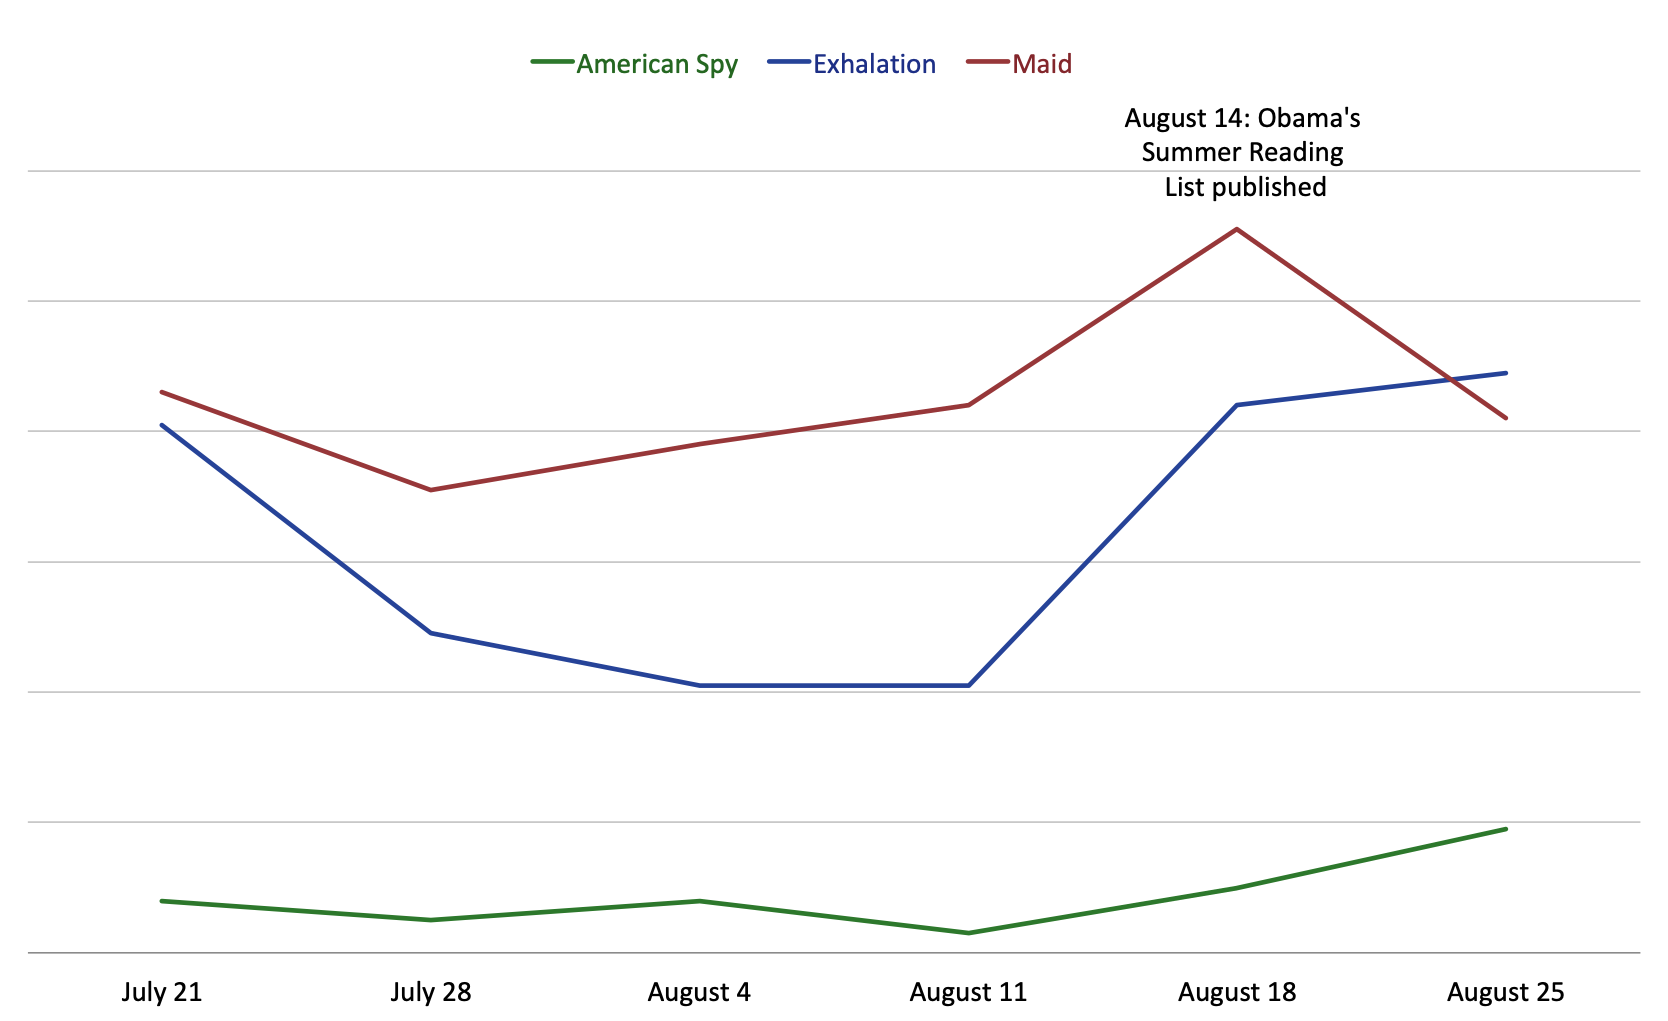 Graph showing the sales for Obama's picks, American Spy, Exhalation, Maid.